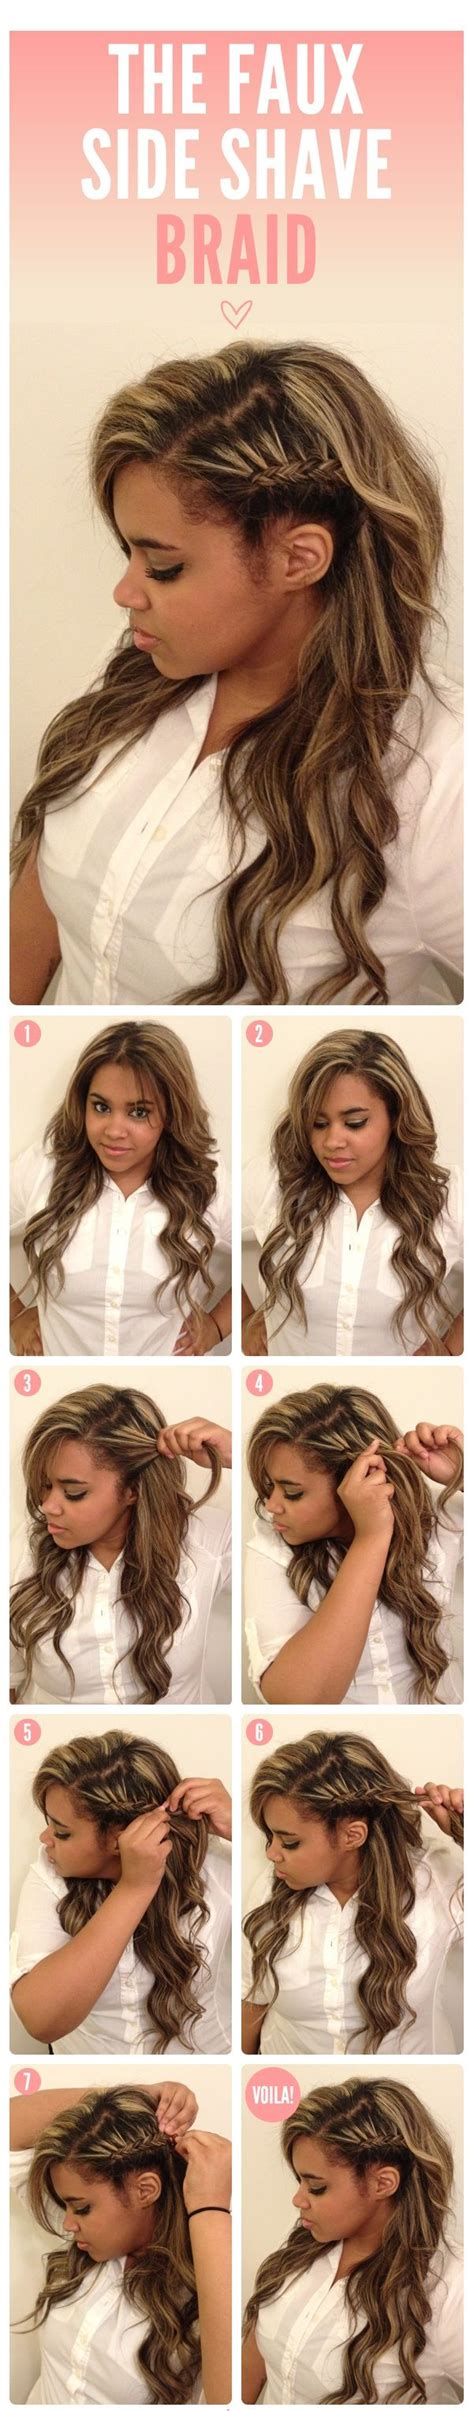 shaven hairstyle totorial top 15 easy to make braids tutorials side shave faux